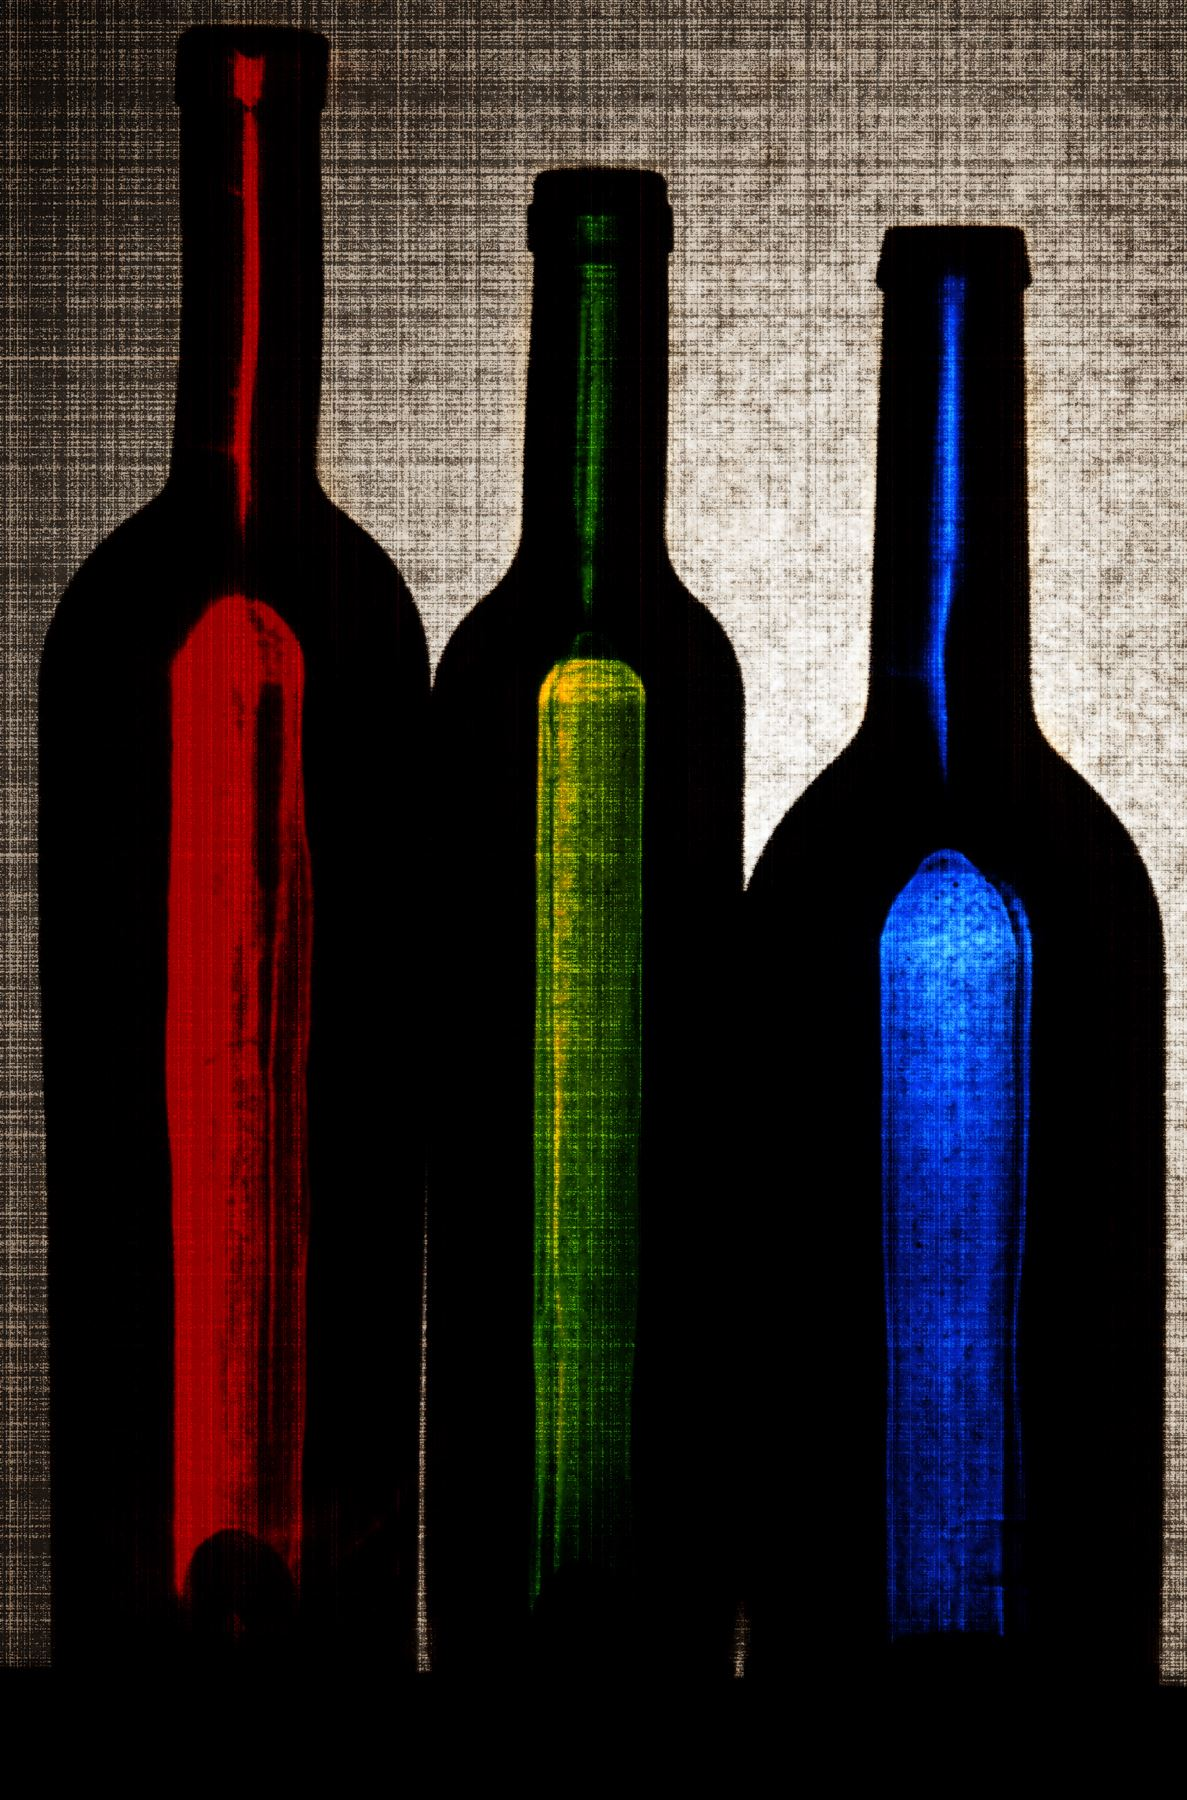 3.-Bottles-with-maximum-horizontal-and-vertical-grain-Softlight.jpg